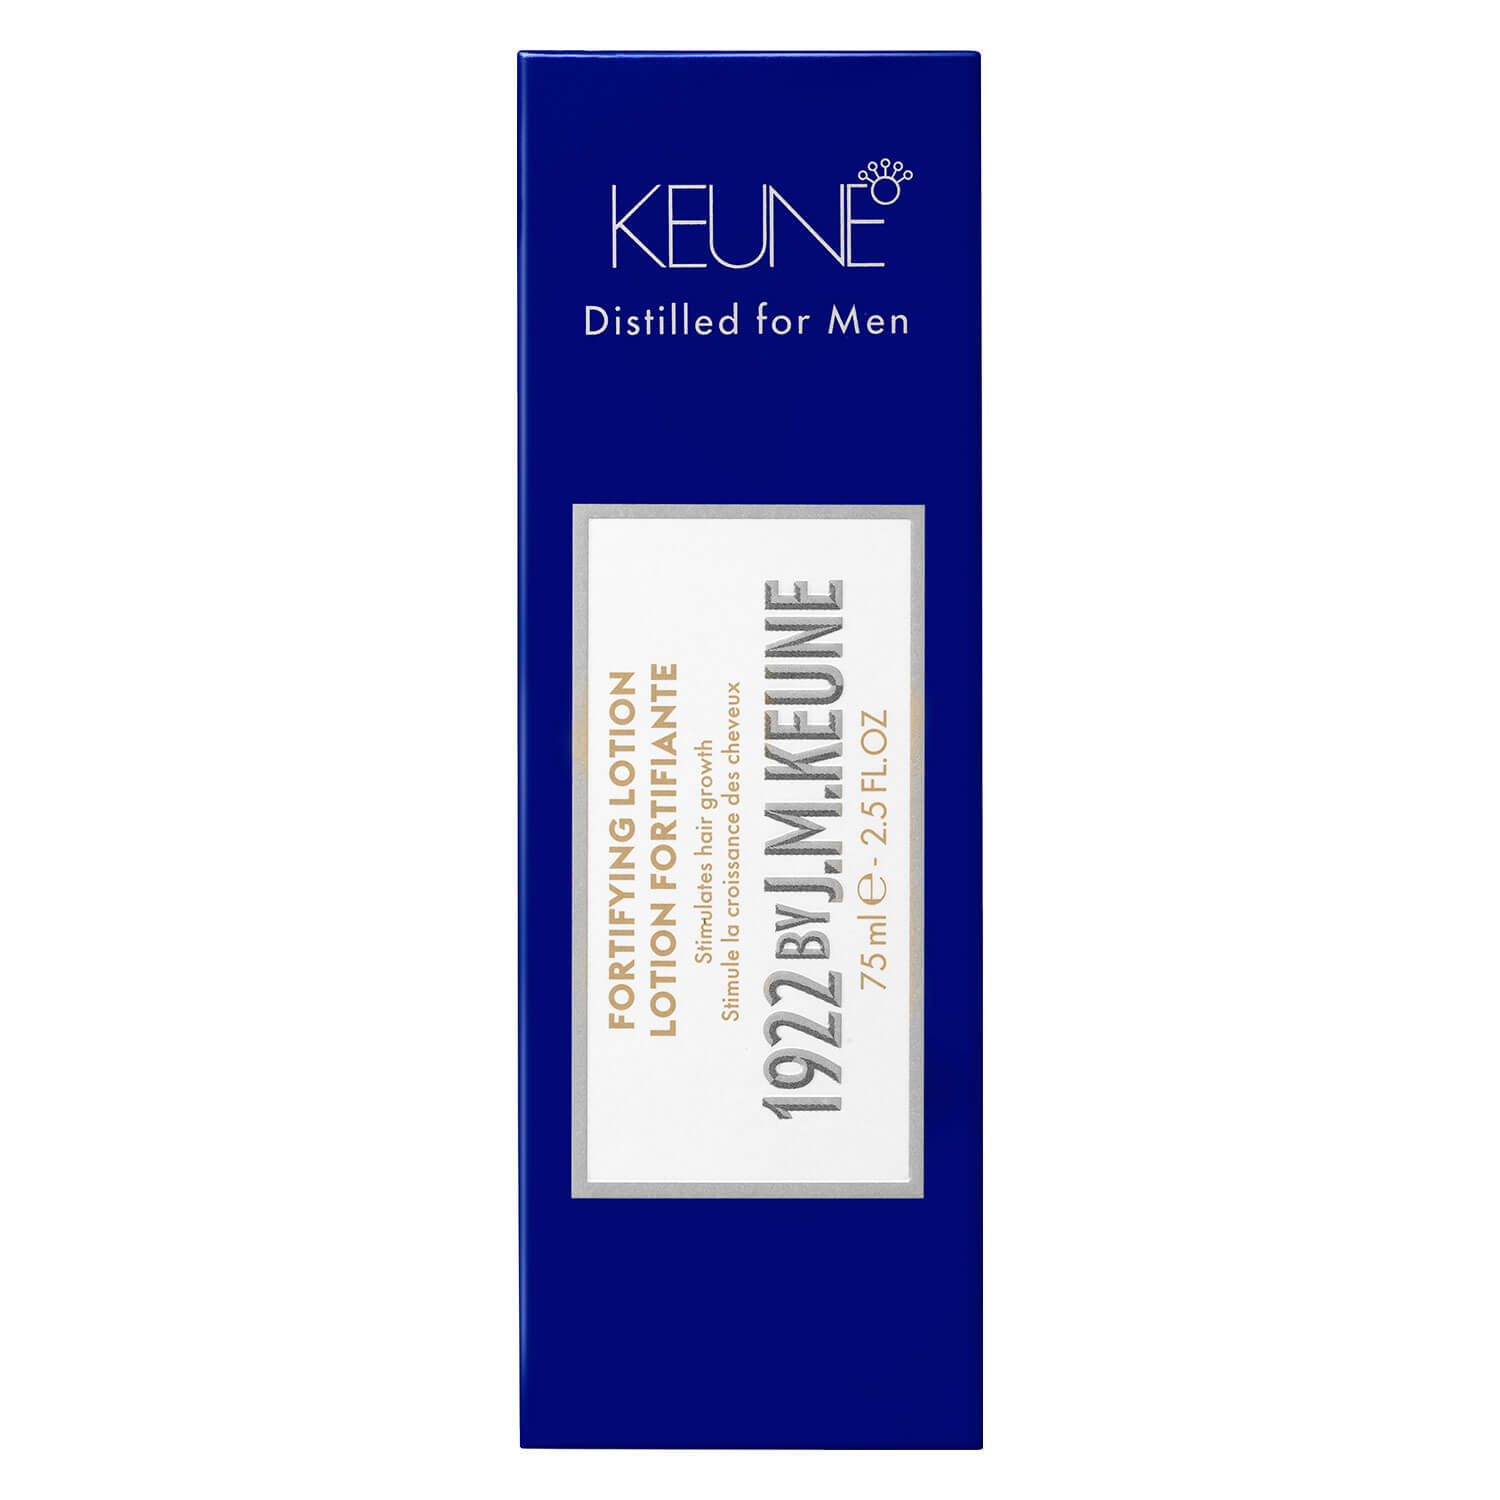 1922 by J.M. Keune - Fortifying Lotion